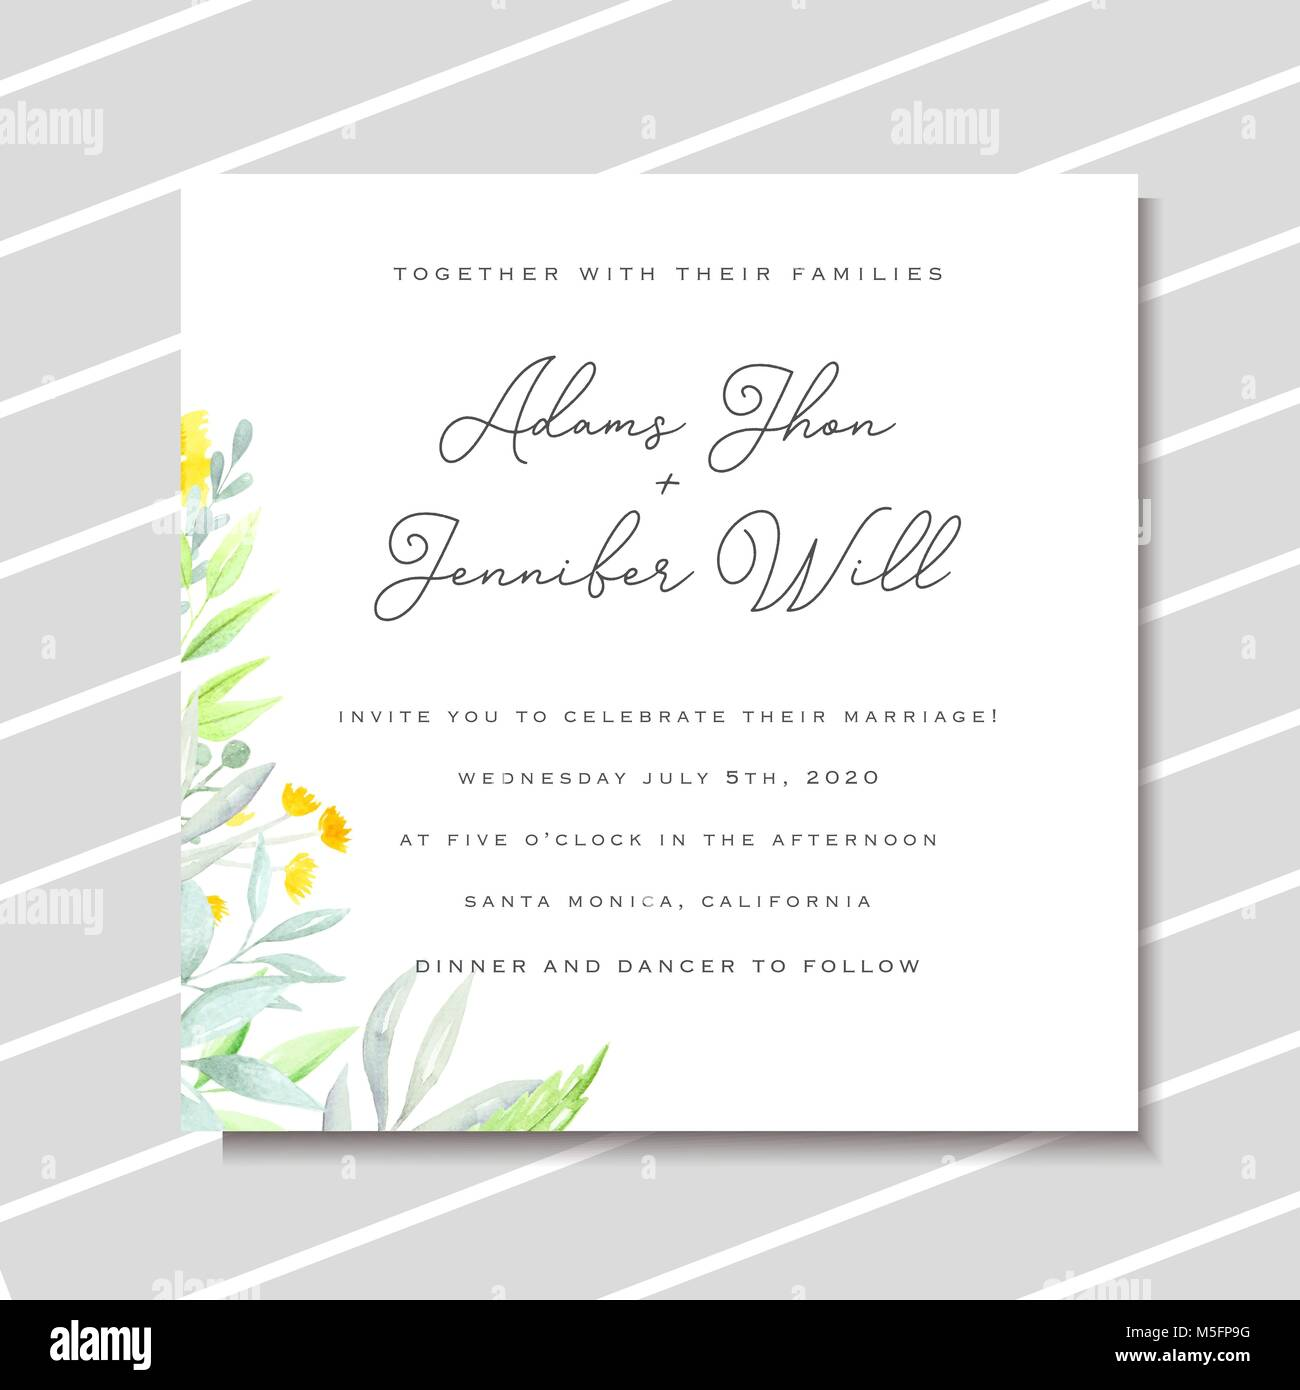 Wedding Invitation Template With Yellow Watercolor Flowers And Green